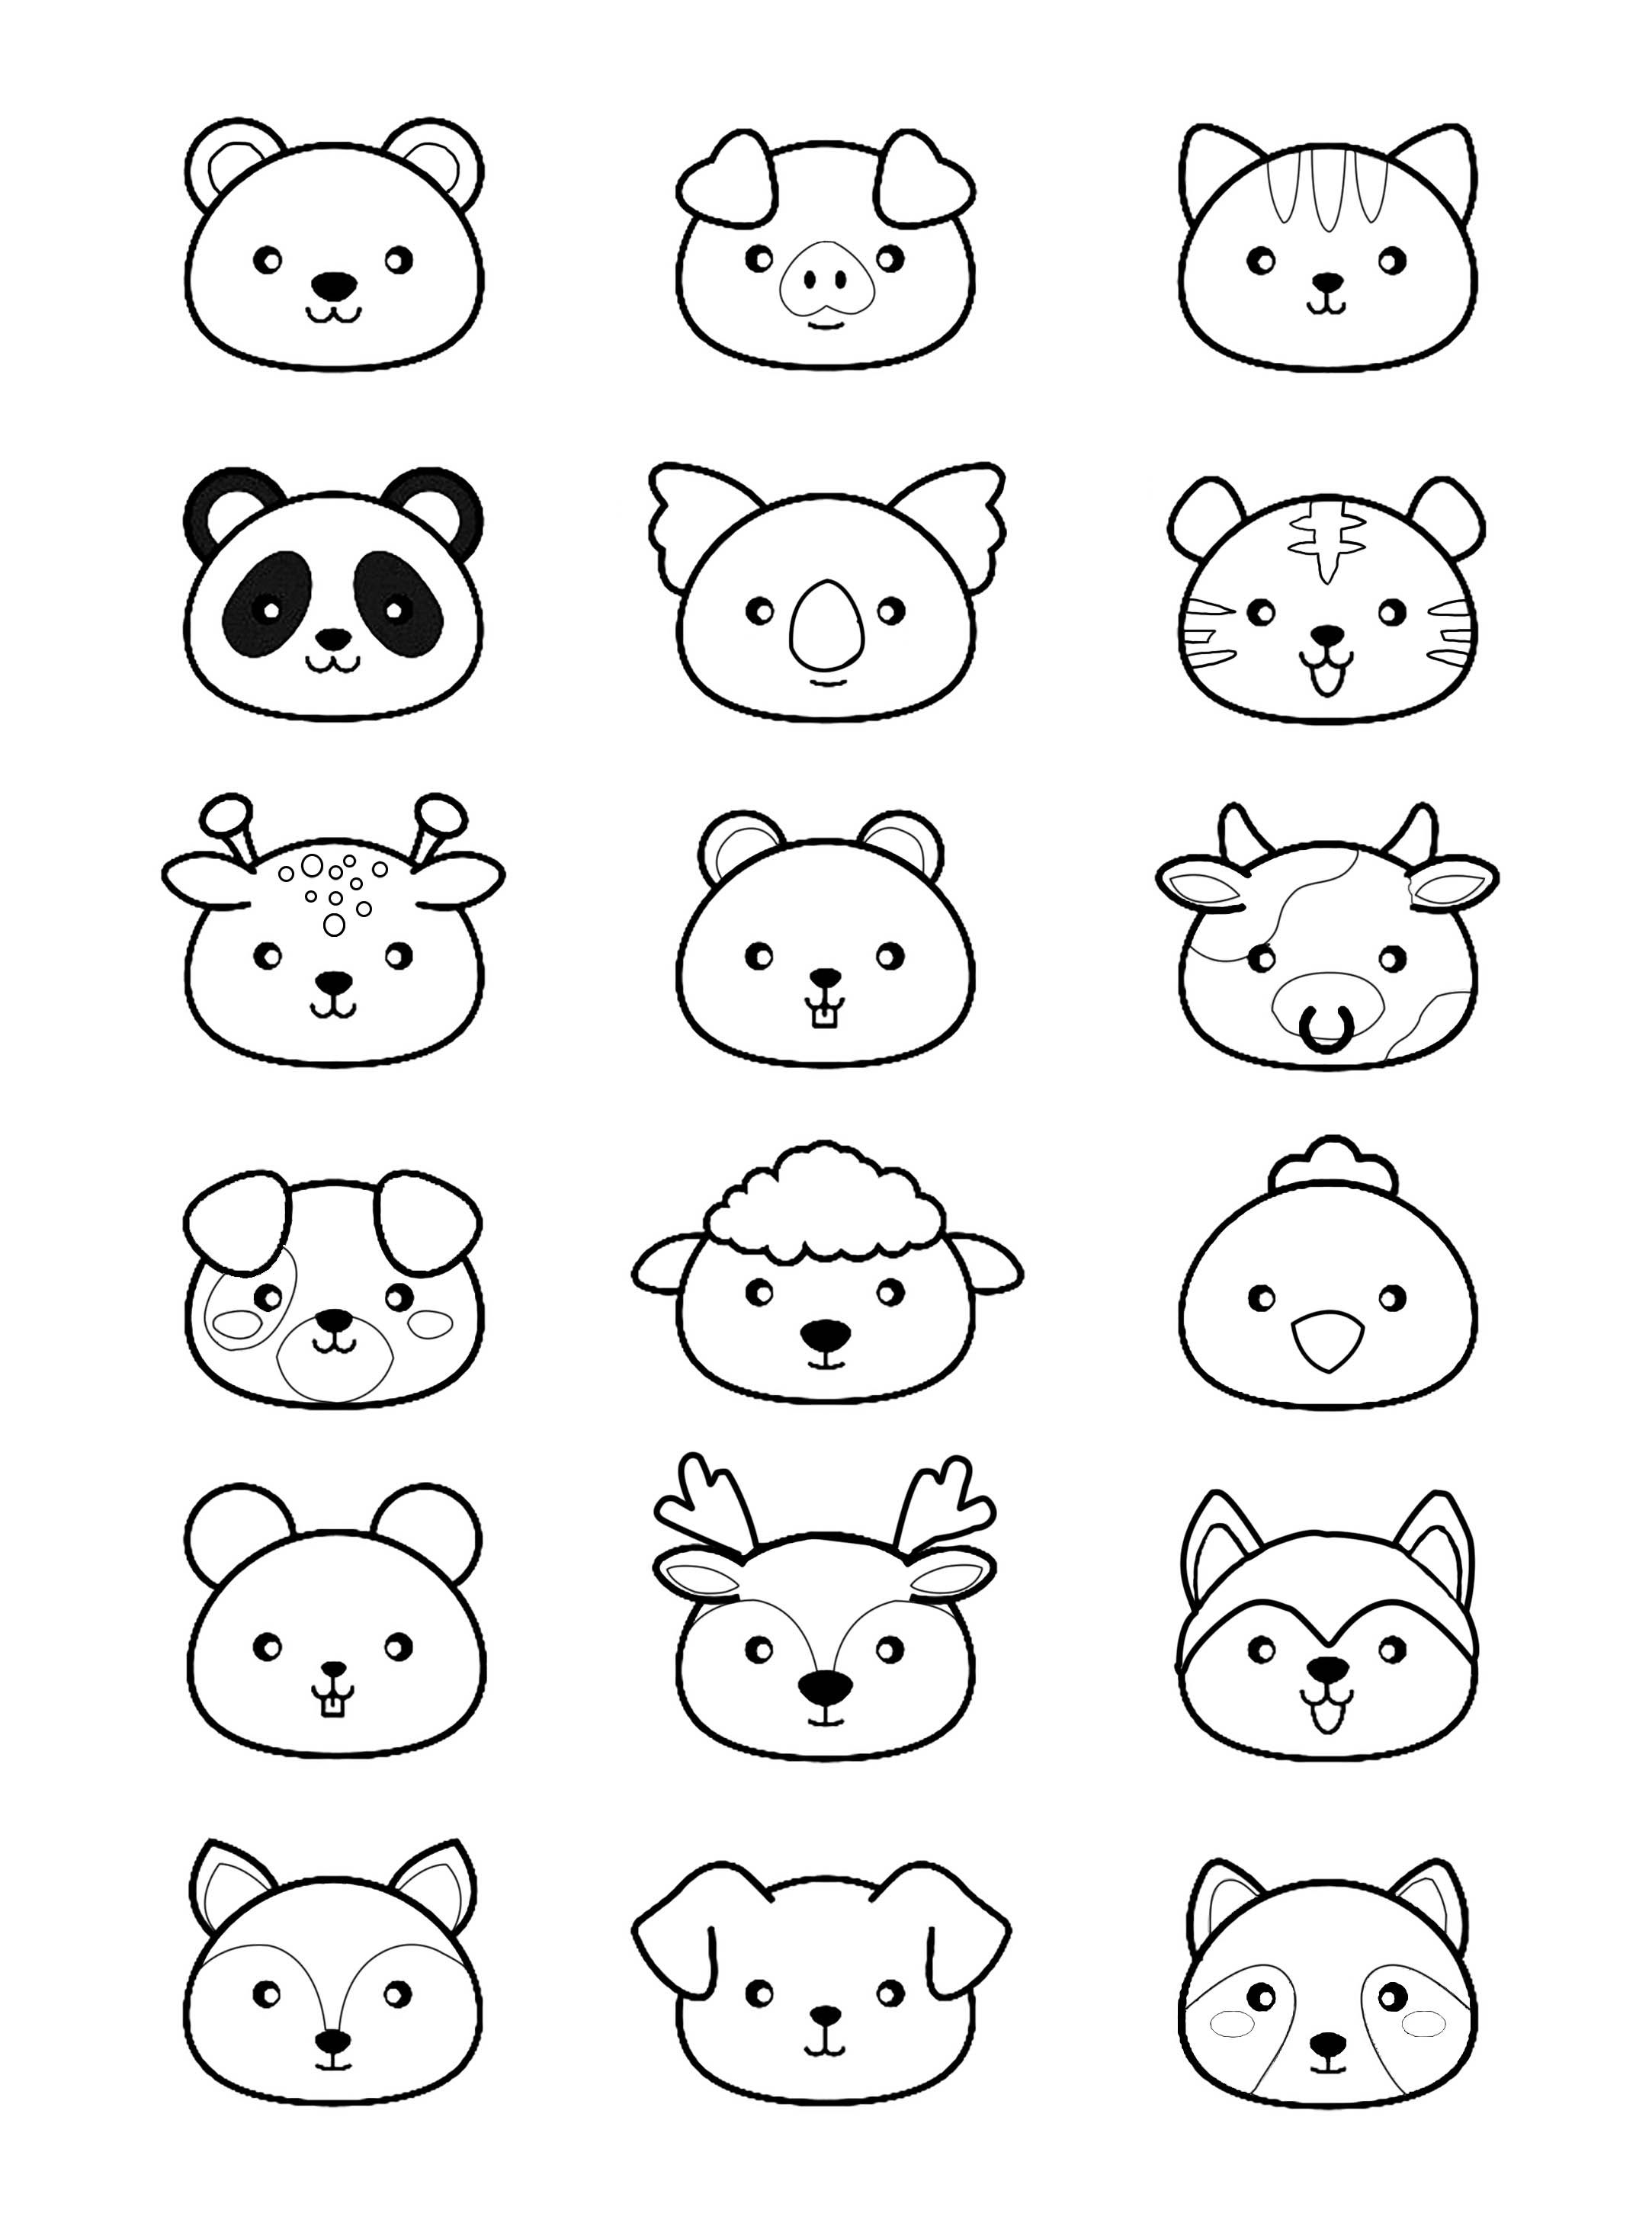 Discover our coloring pages of Panda to print and color for free ! Did you know ? Giant pandas grow to between 1.2m and 1.5m, and weigh between 75kg and 135kg. Scientists aren't sure how long pandas live in the wild, but in captivity they live to be around 30 years old. #coloringpagestoprint